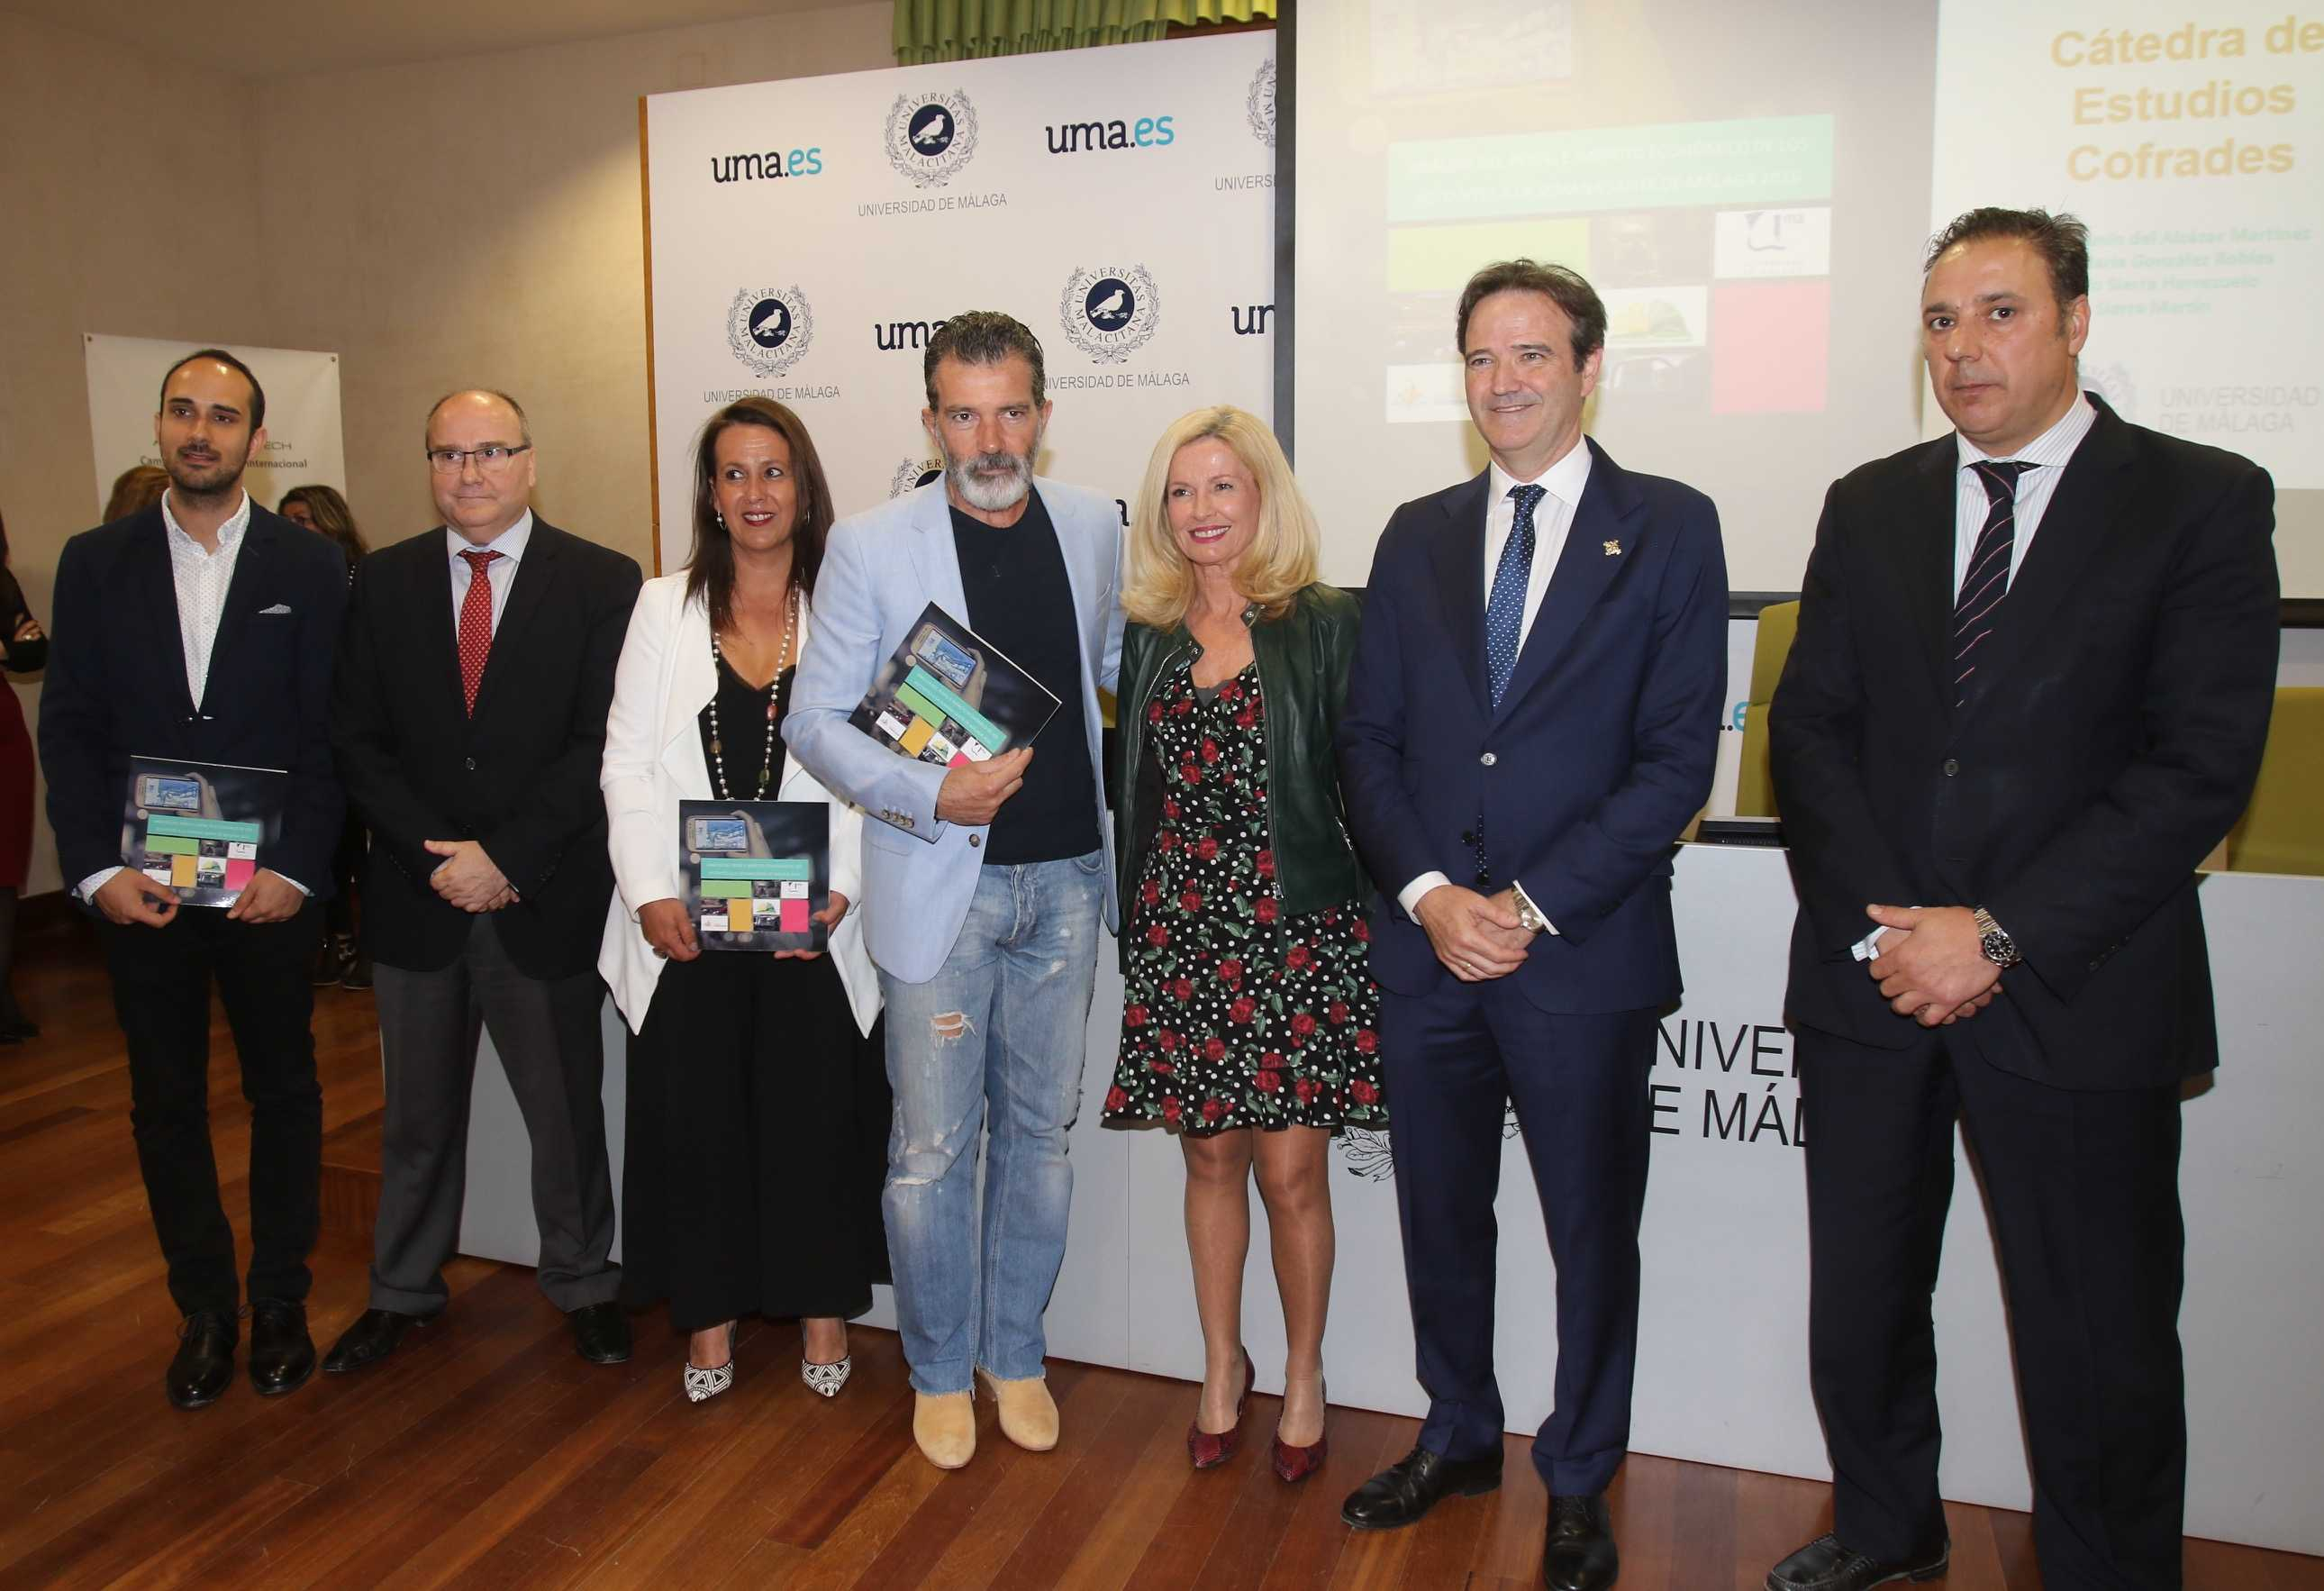 The Malaga actor Antonio Banderas has presented the first Research Awards to the best doctoral thesis and end-of-degree or career papers convened by the Chair of Studies Cofrades of the University of Malaga that carries his Foundation, the Lagrimas and favors